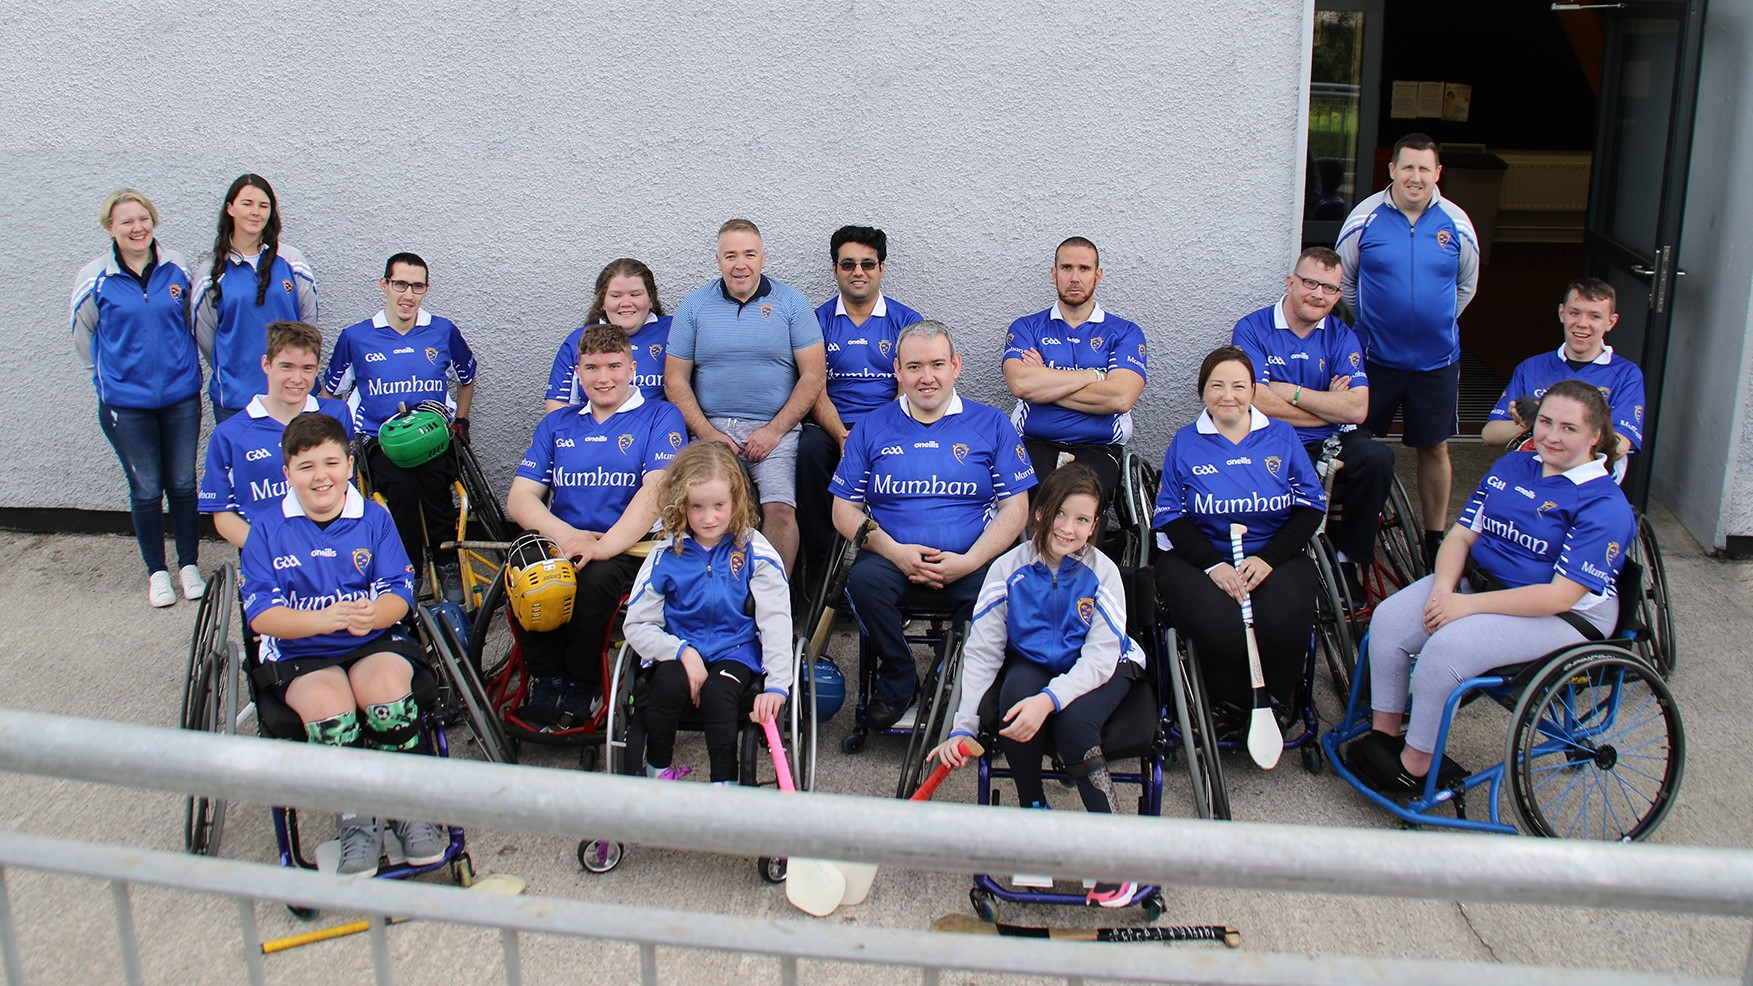 Munster Wheelchair Hurling event – Saturday 14th September 2019